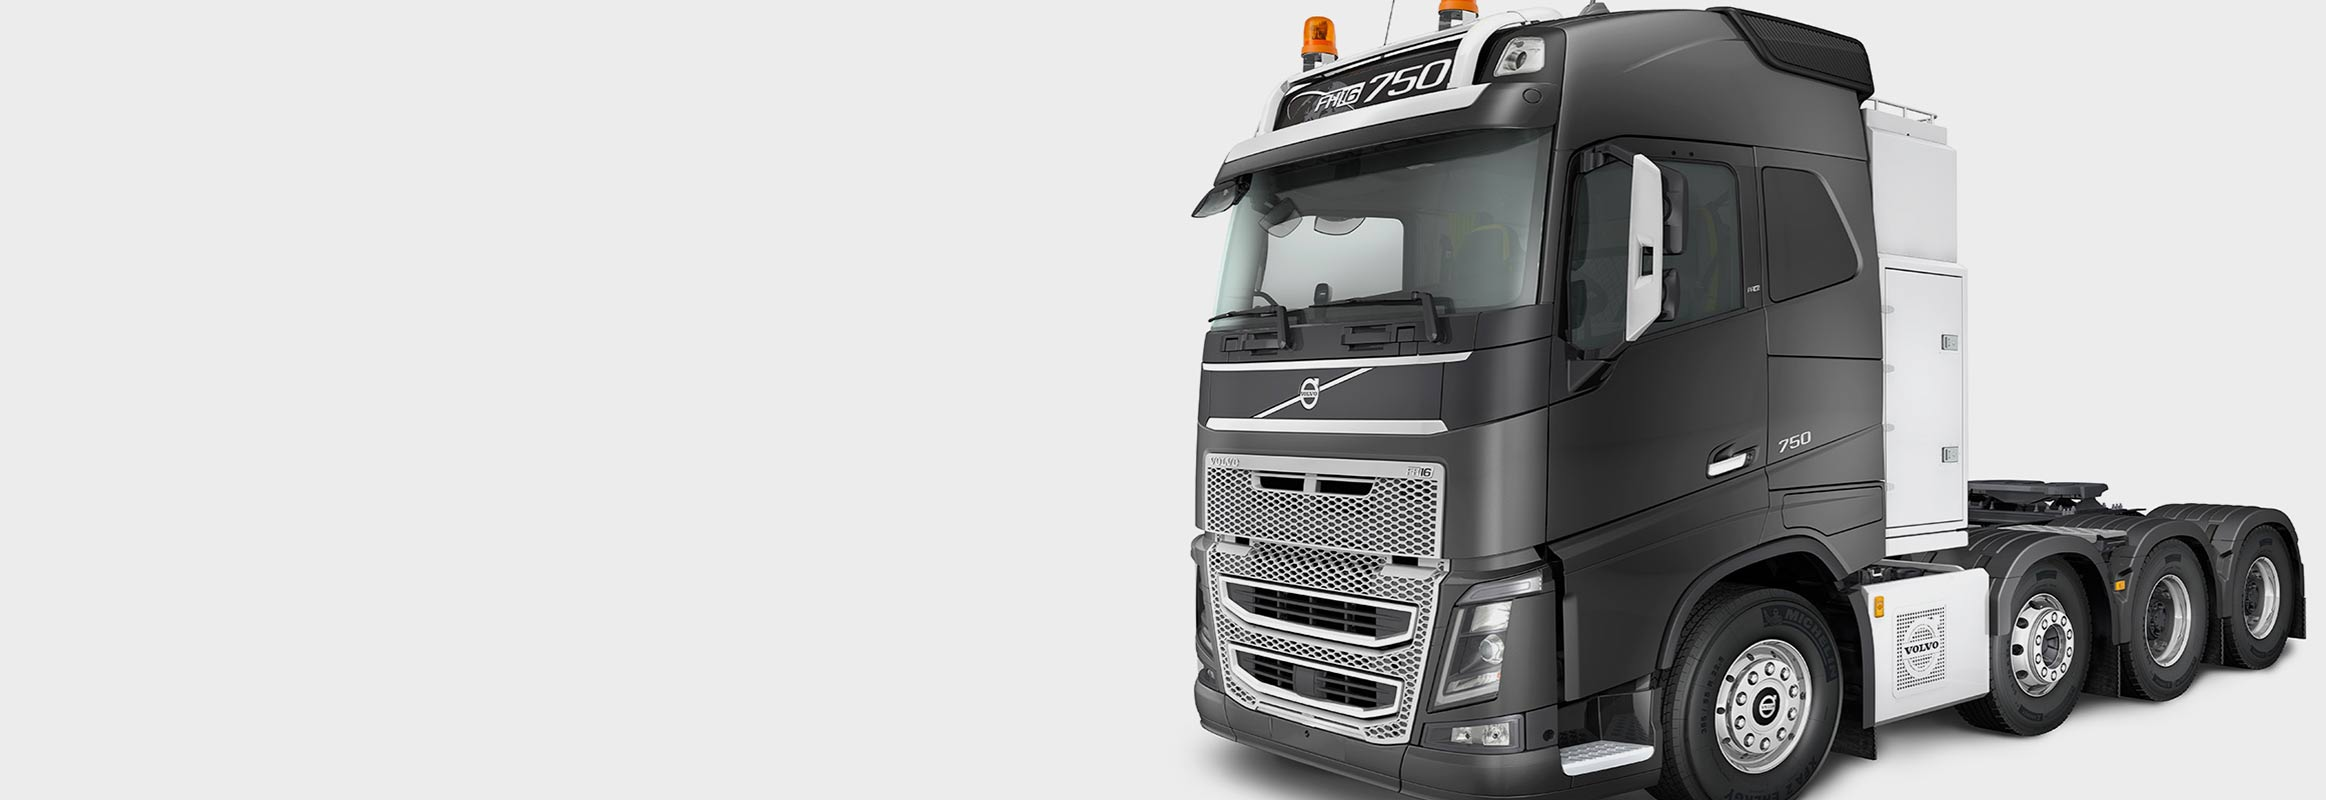 Volvo FH16 - A beauty on the surface | Volvo Trucks